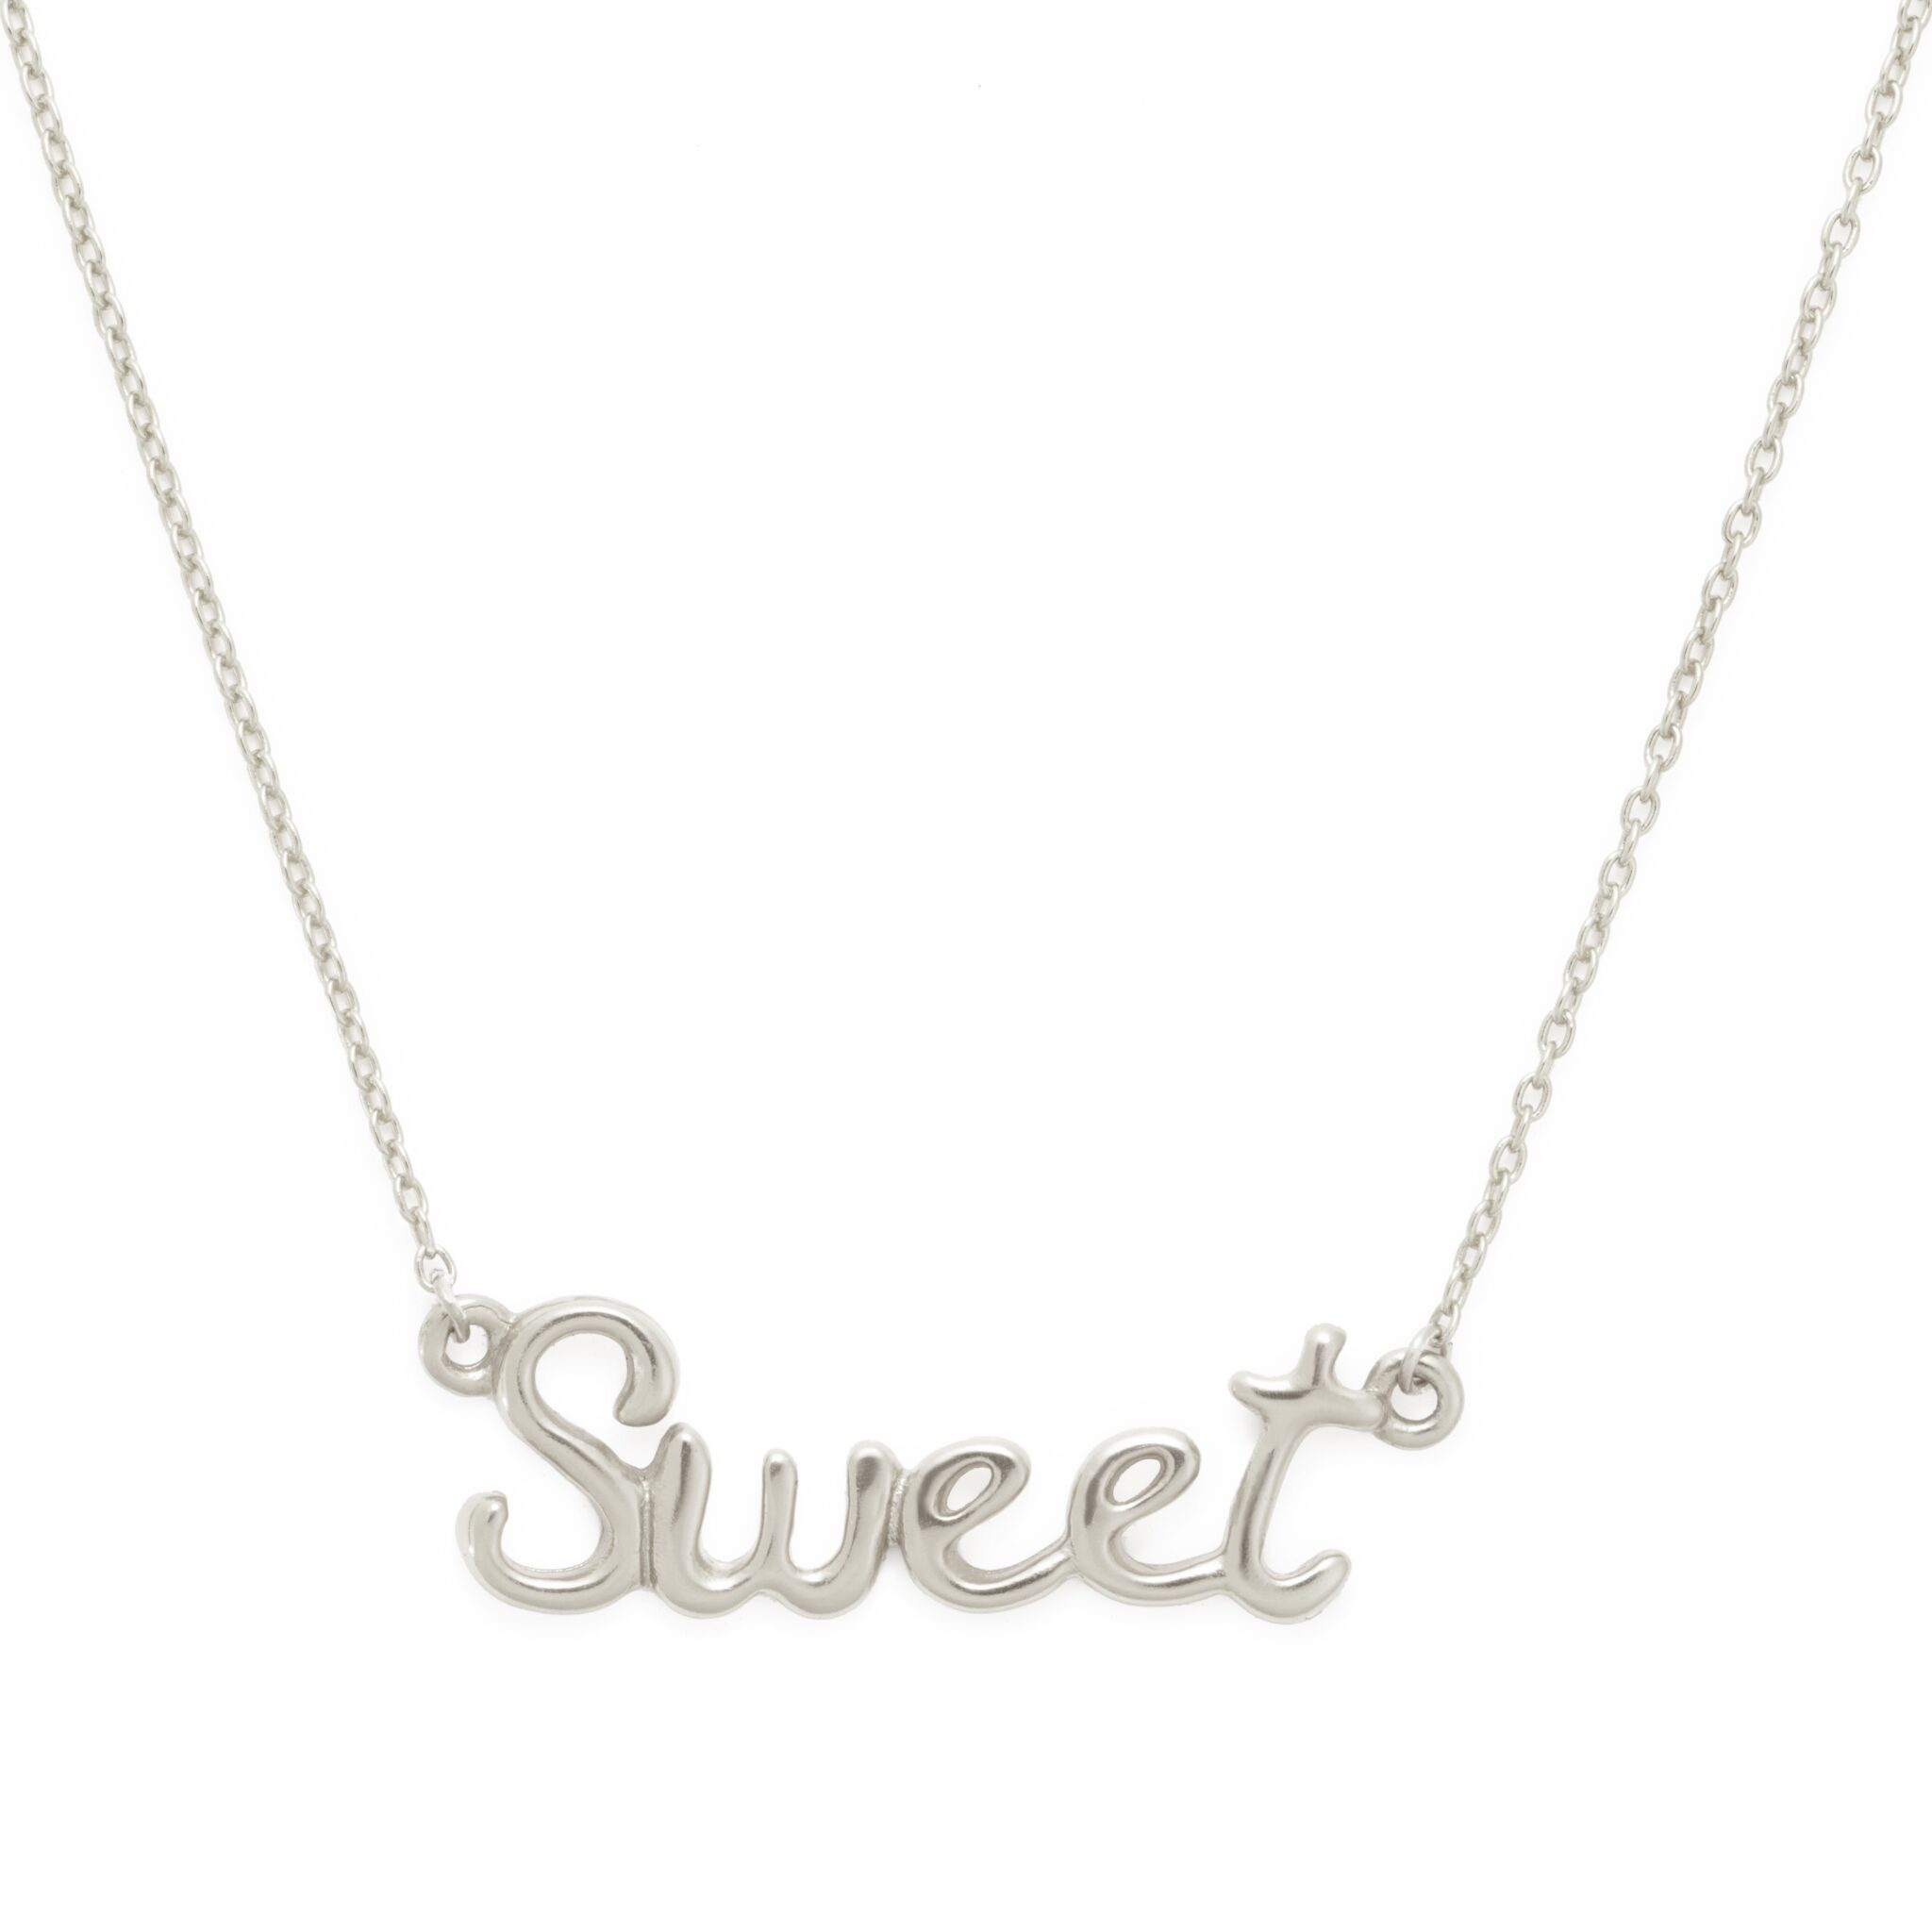 Sweet Necklace, Sterling Silver